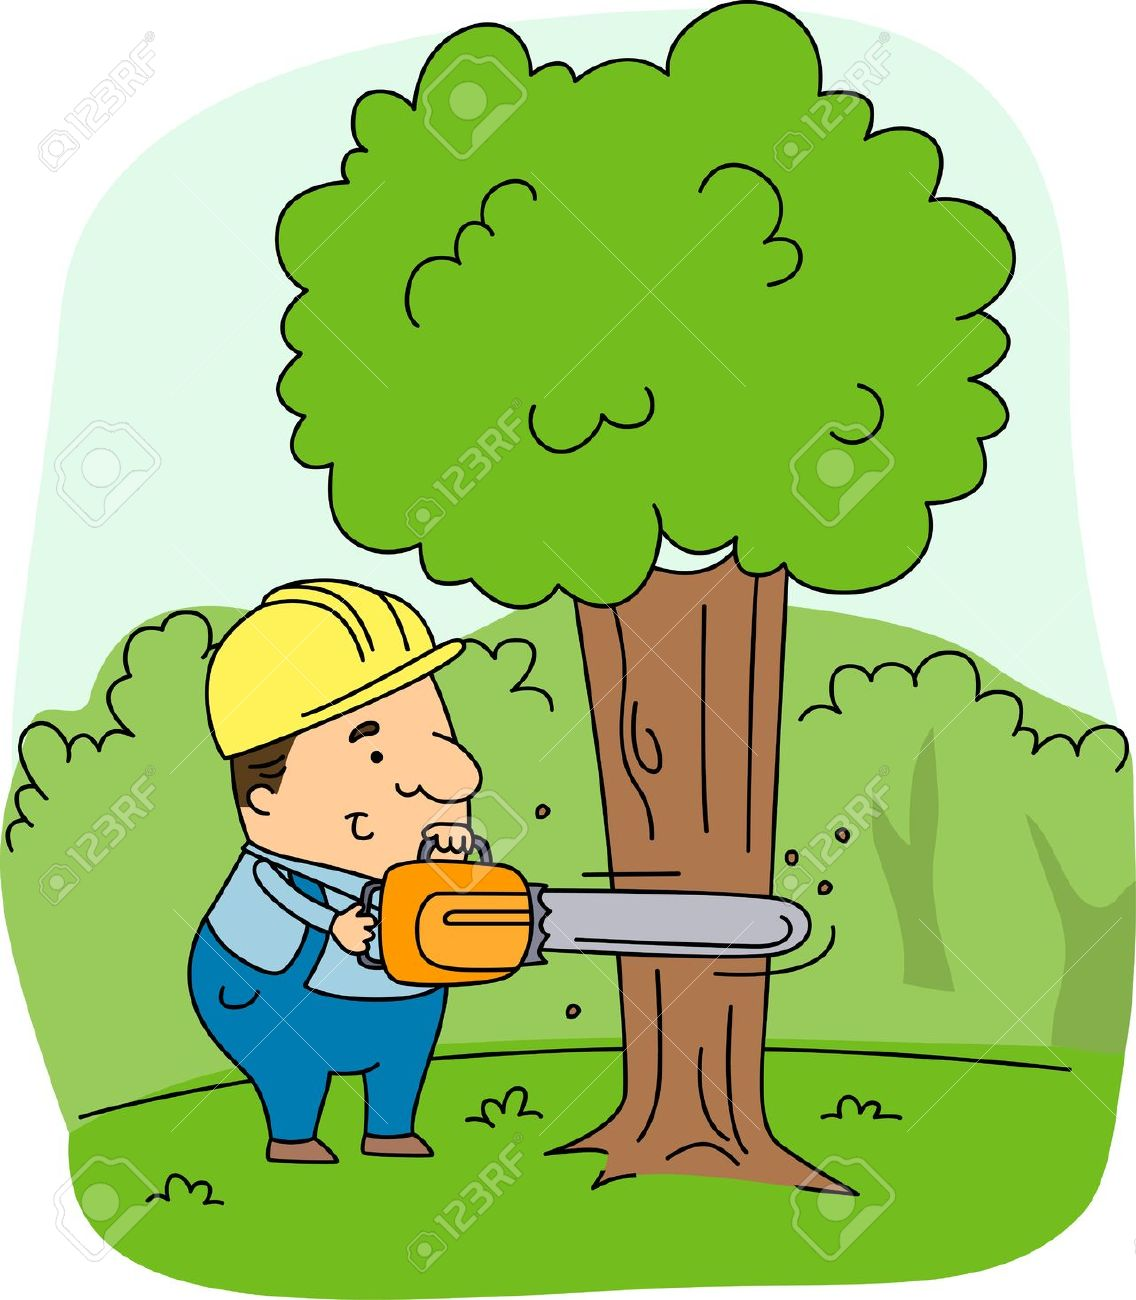 Deforestation clipart 8 » Clipart Station.